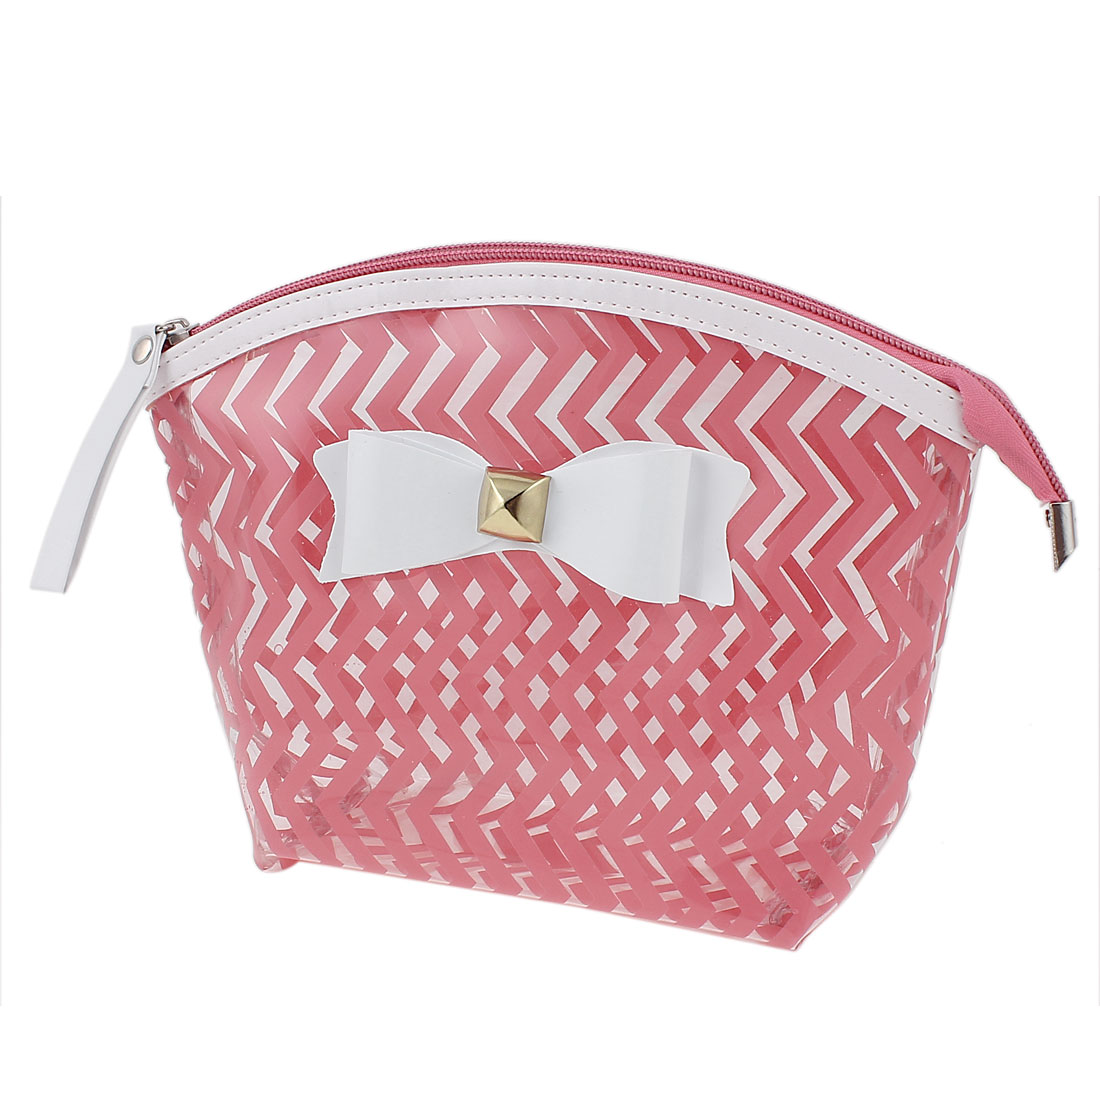 Travel Portable Zipper Closure Bowknot Decor Wave Line Pattern PVC Cosmetic Makeup Bag Toiletries Sundrise Holder Pink for Lady